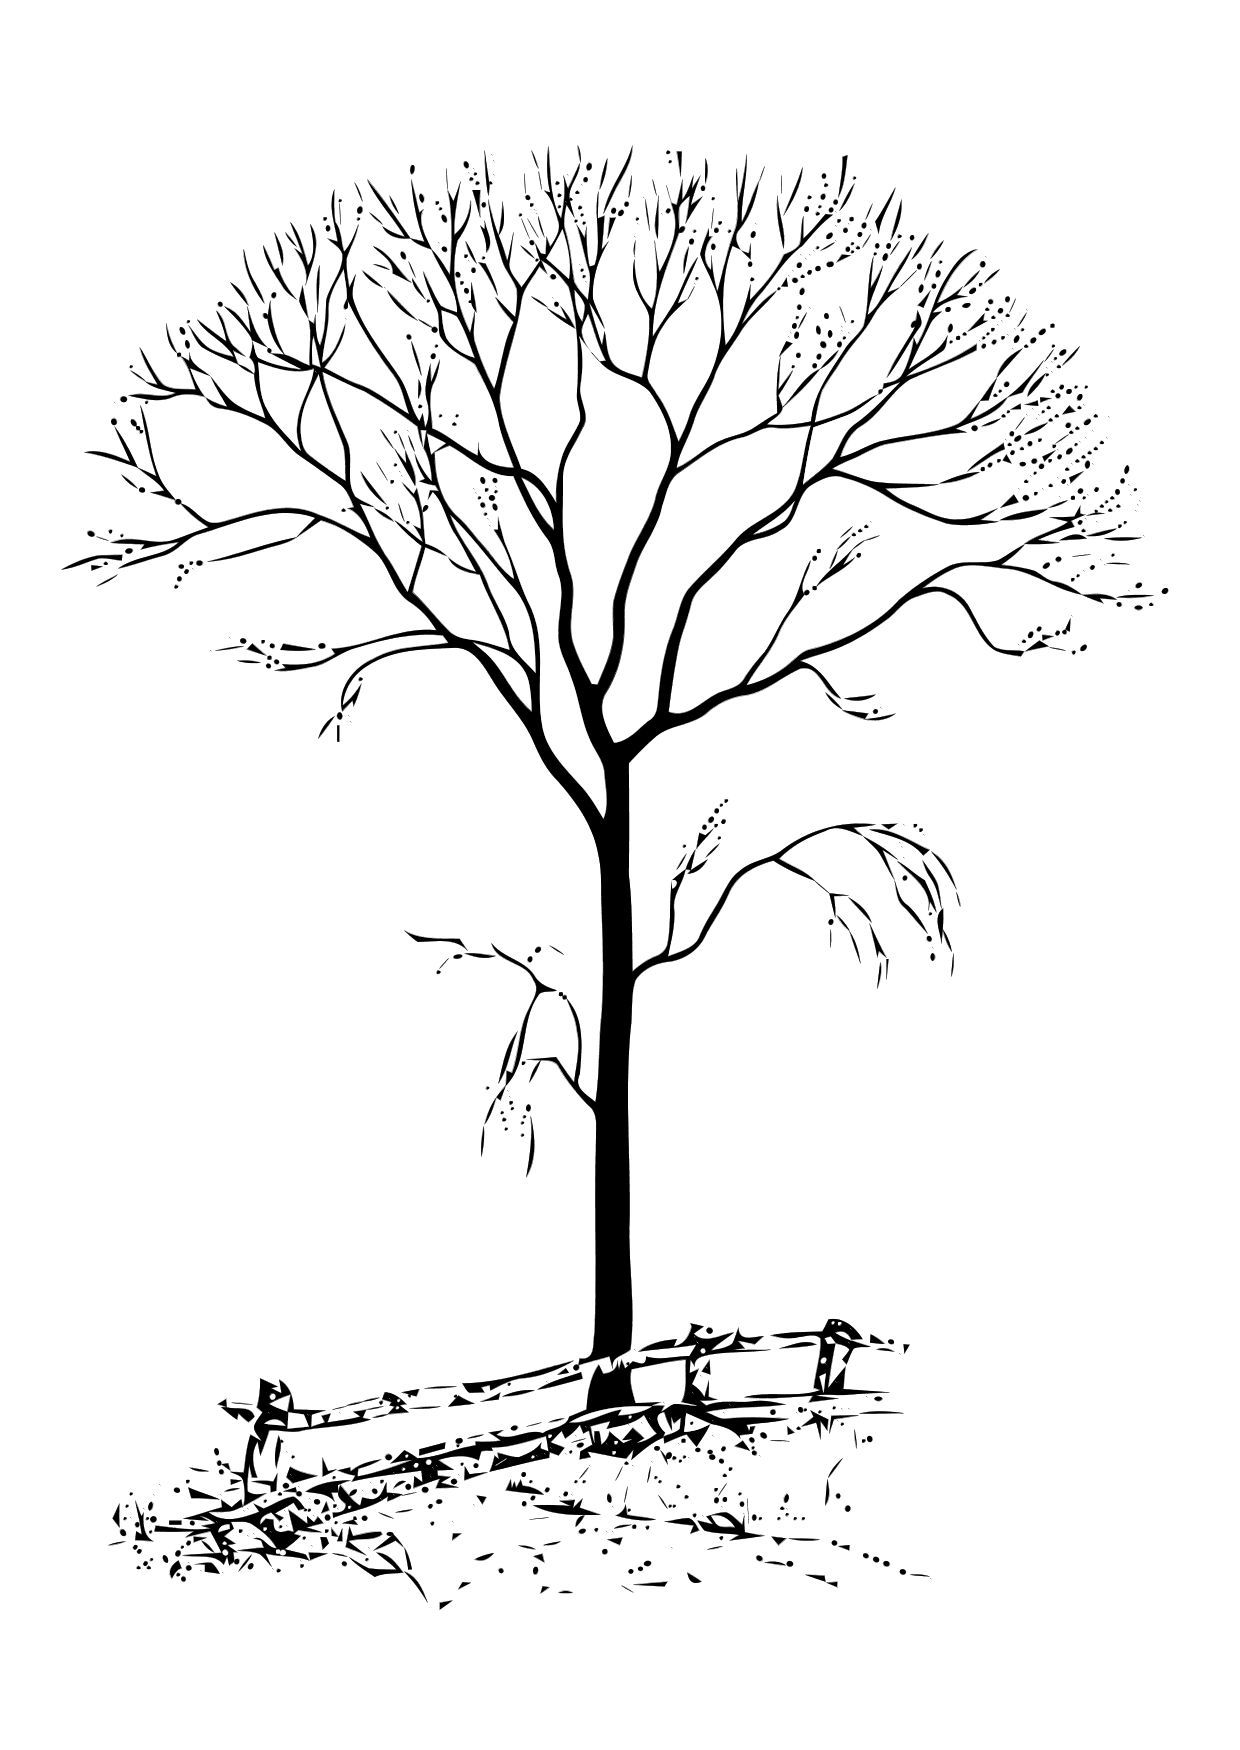 Free Printable Tree Coloring Pages For Kids Leaf Coloring Page Tree Coloring Page Coloring Pages